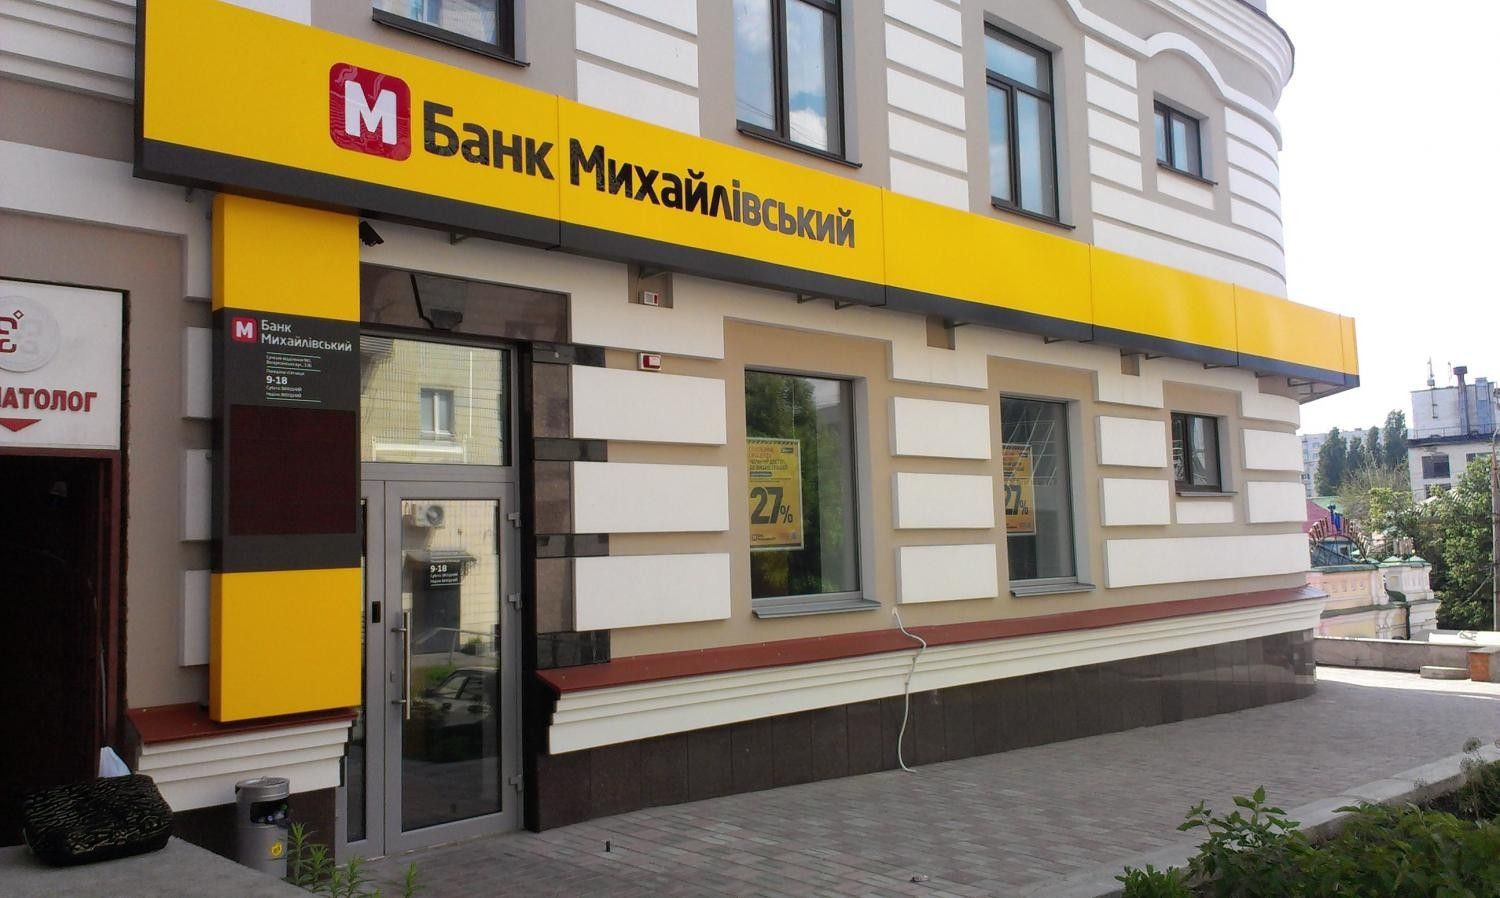 Last week, the most prominent was the story with Mykhailivsliy bank / finbalance.com.ua